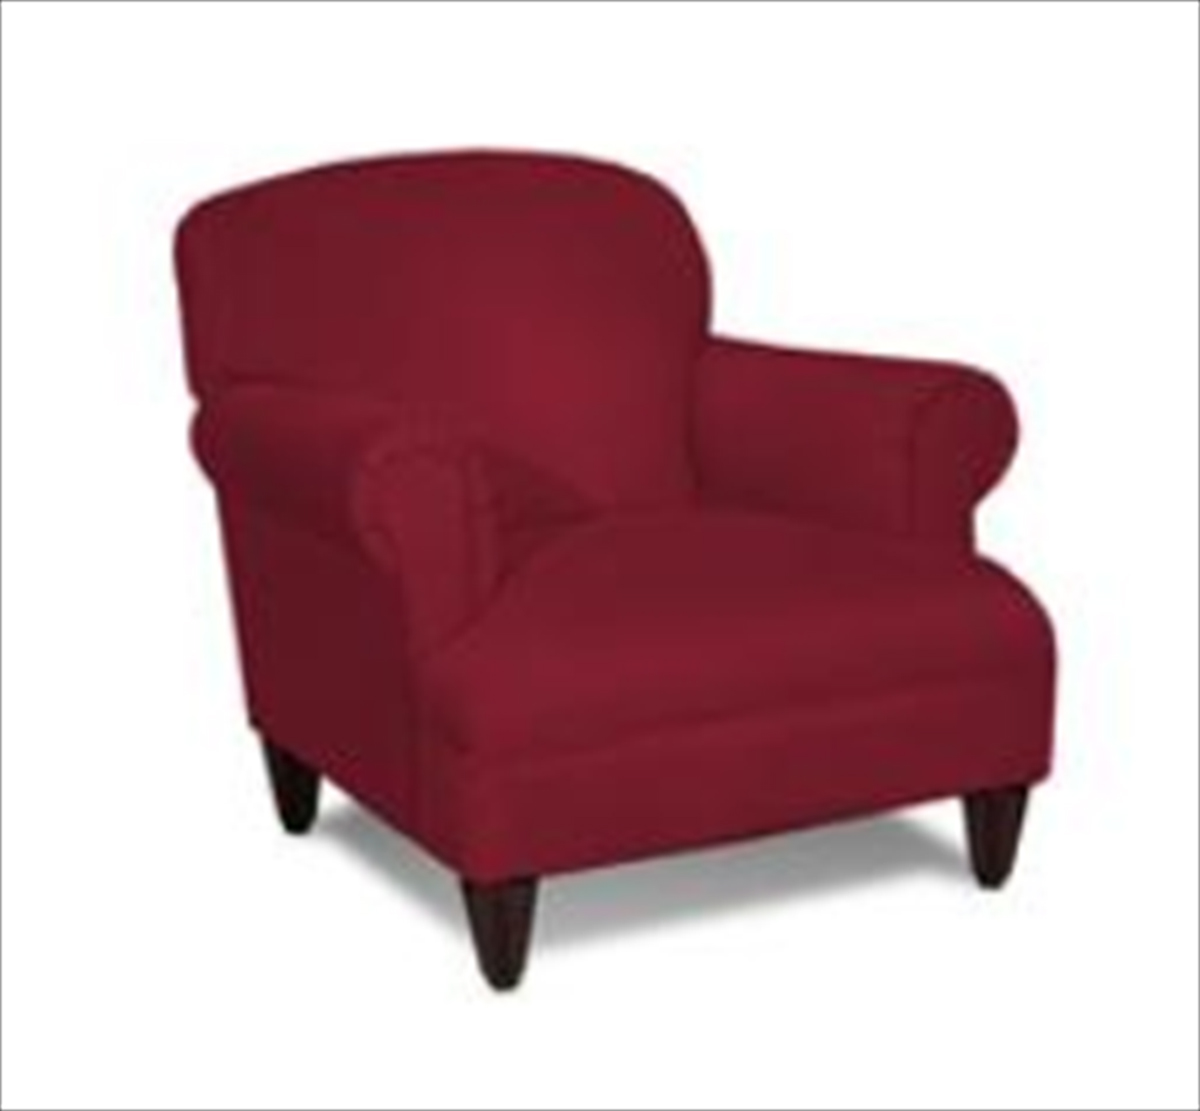 Klaussner Wrigley Chair - Belsire Red